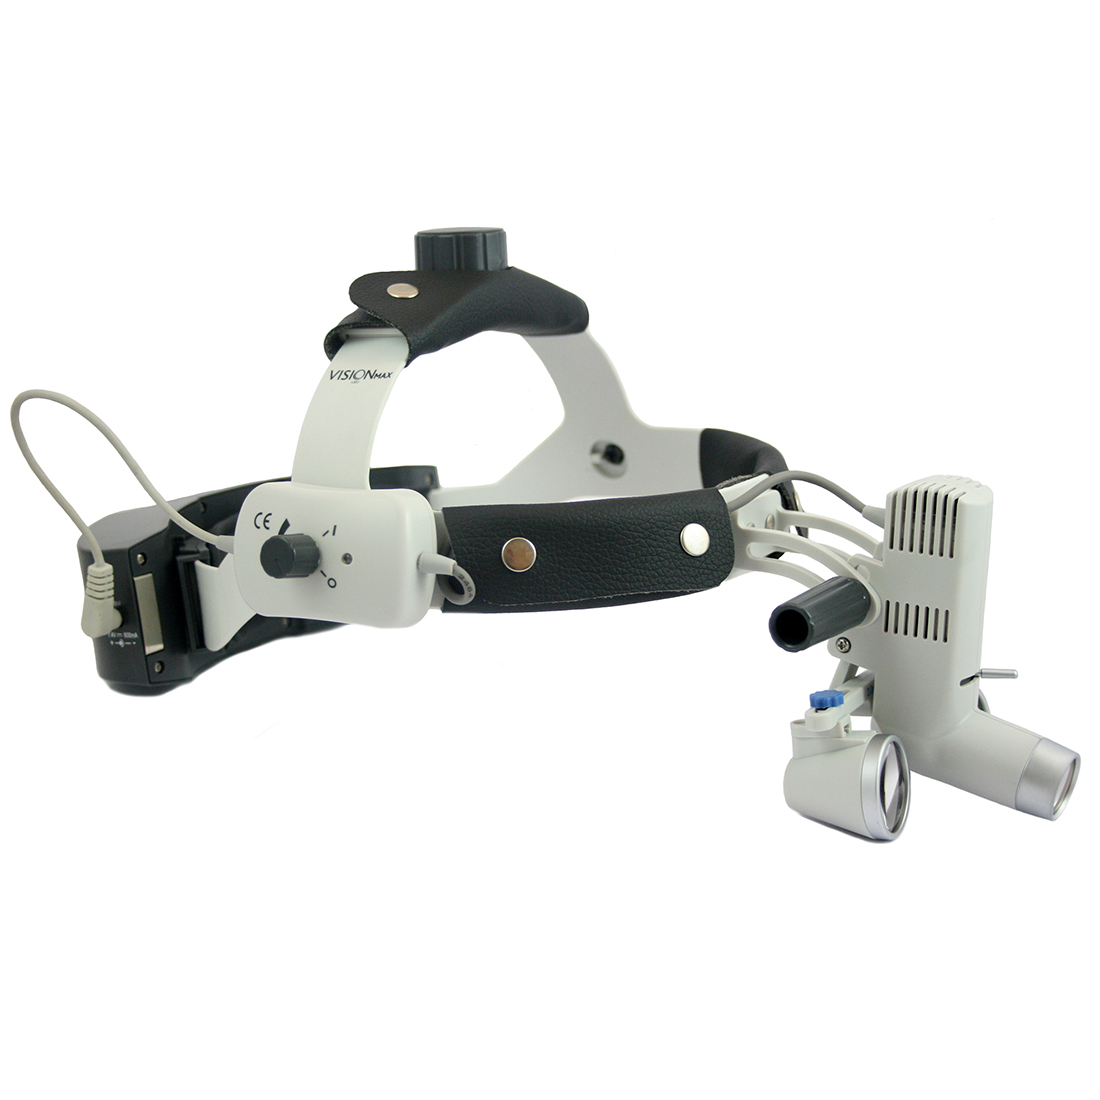 Led Wireless Headlight Headband Mounted Cell With Loupes